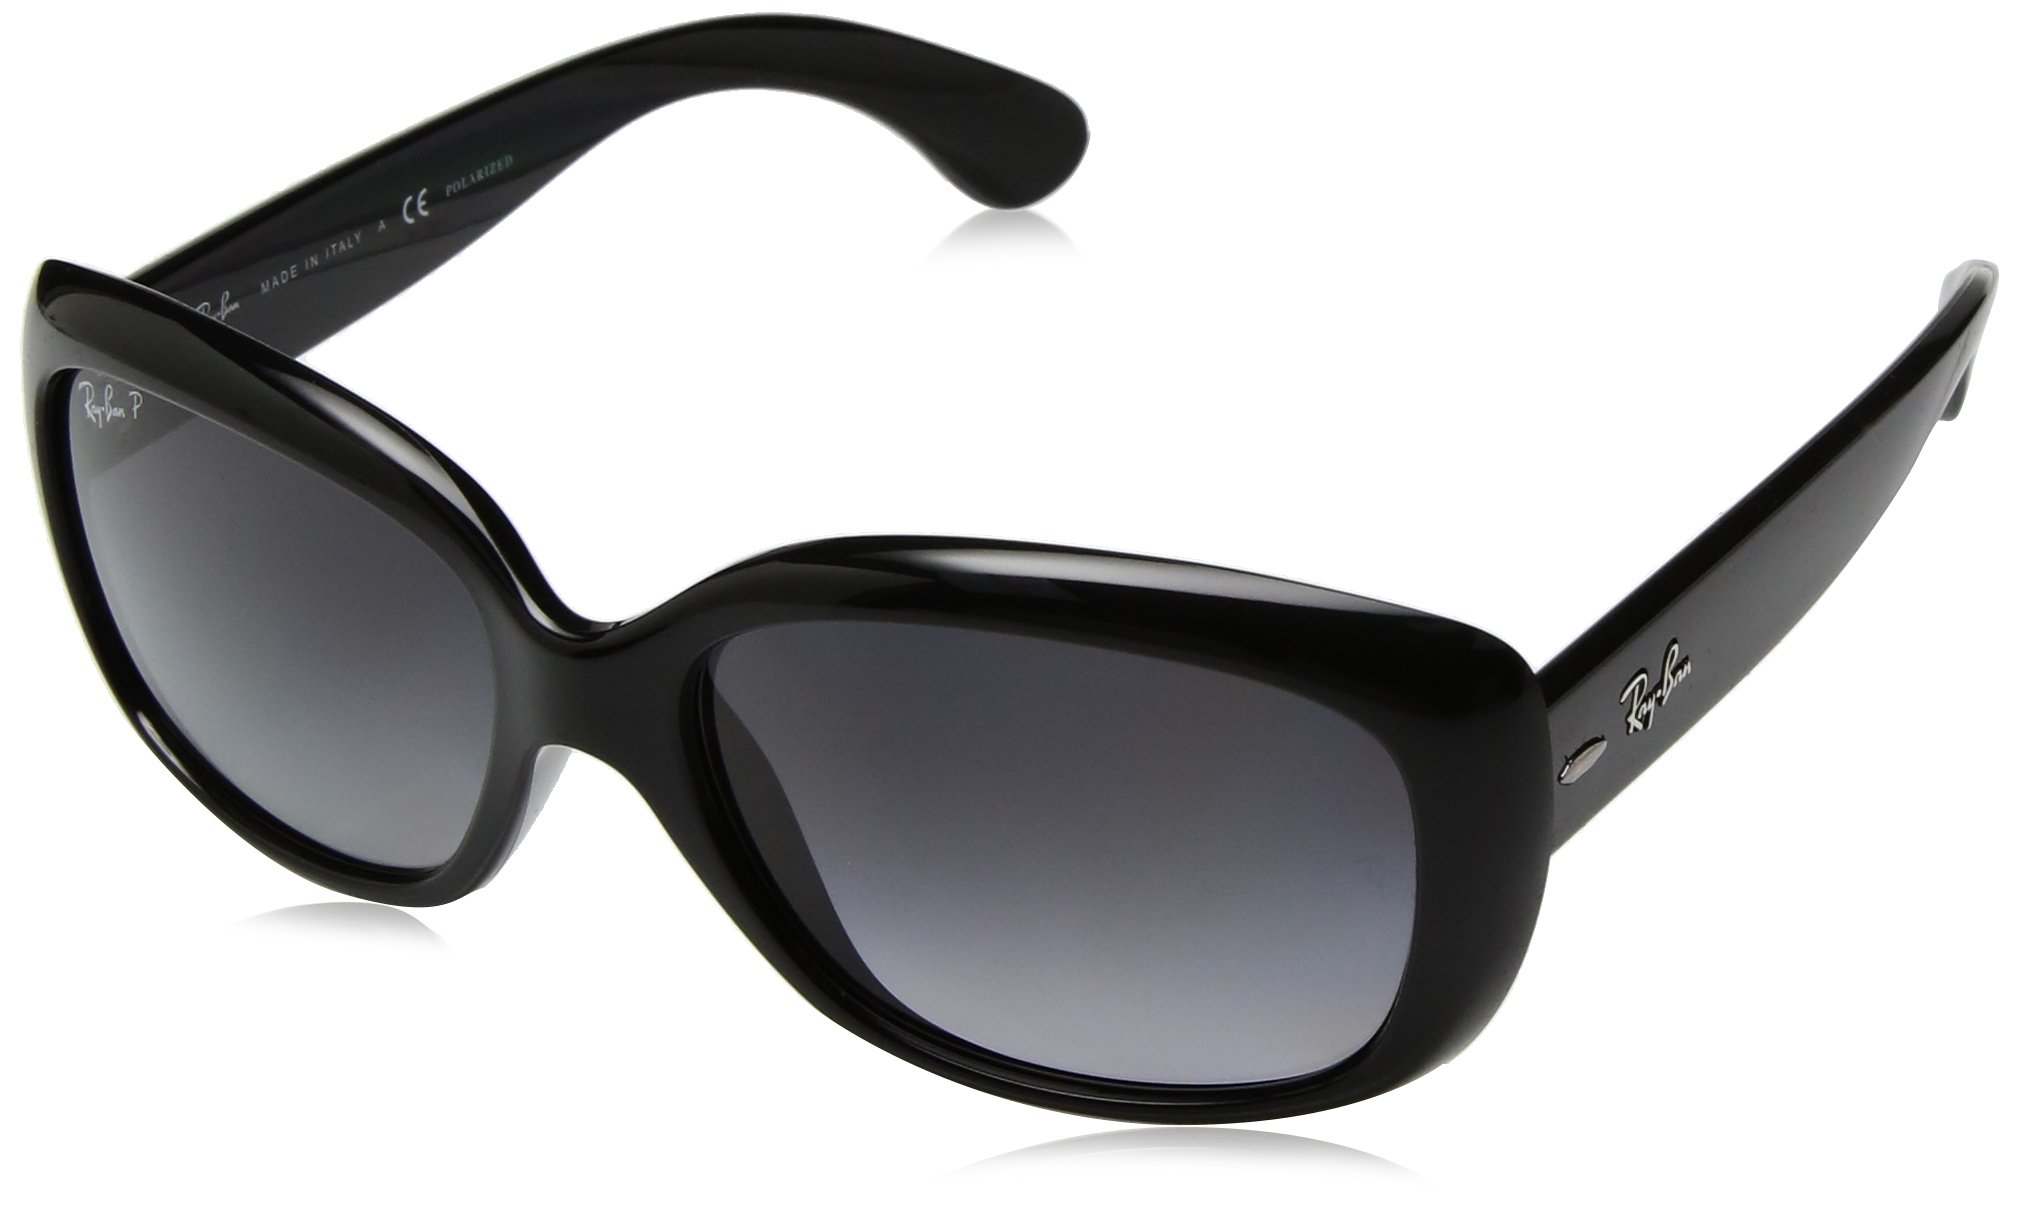 RAY-BAN Women's RB4101 Jackie Ohh Sunglasses, Black/Polarized Grey Gradient, 58 mm by RAY-BAN